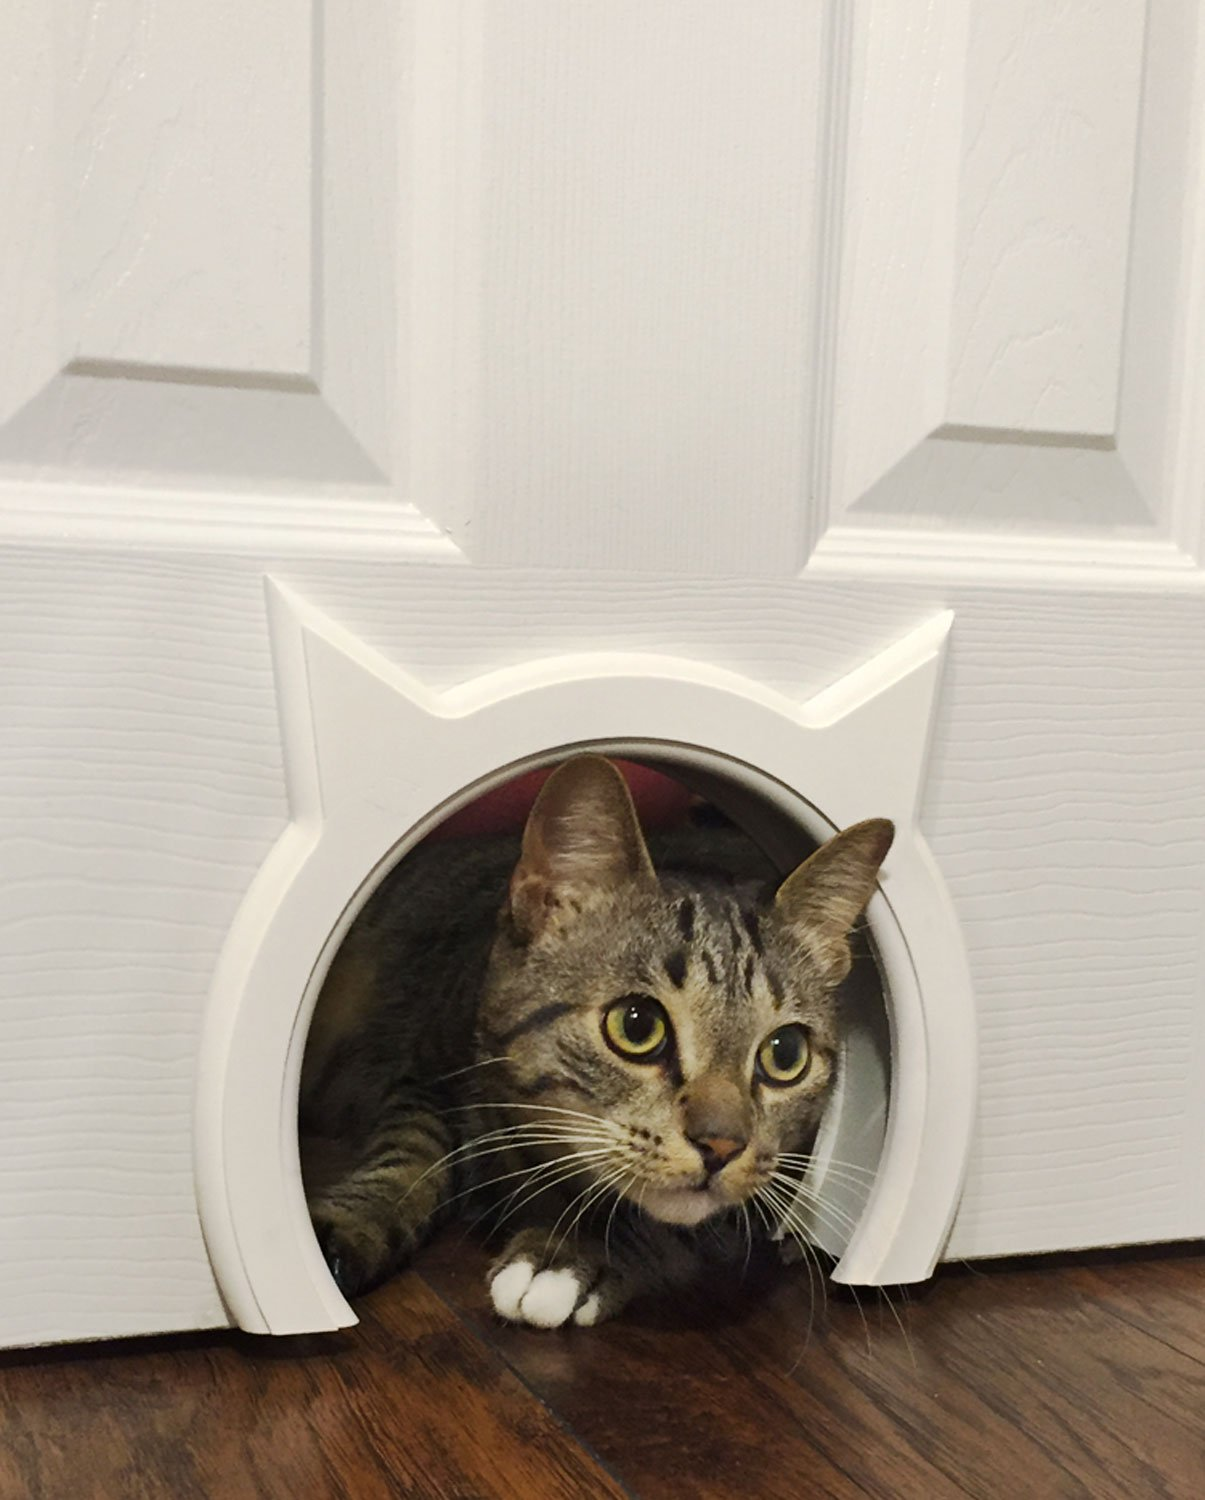 The Kitty Pass Interior Cat Door Hidden Litter Box Pet Door for cats up to 21